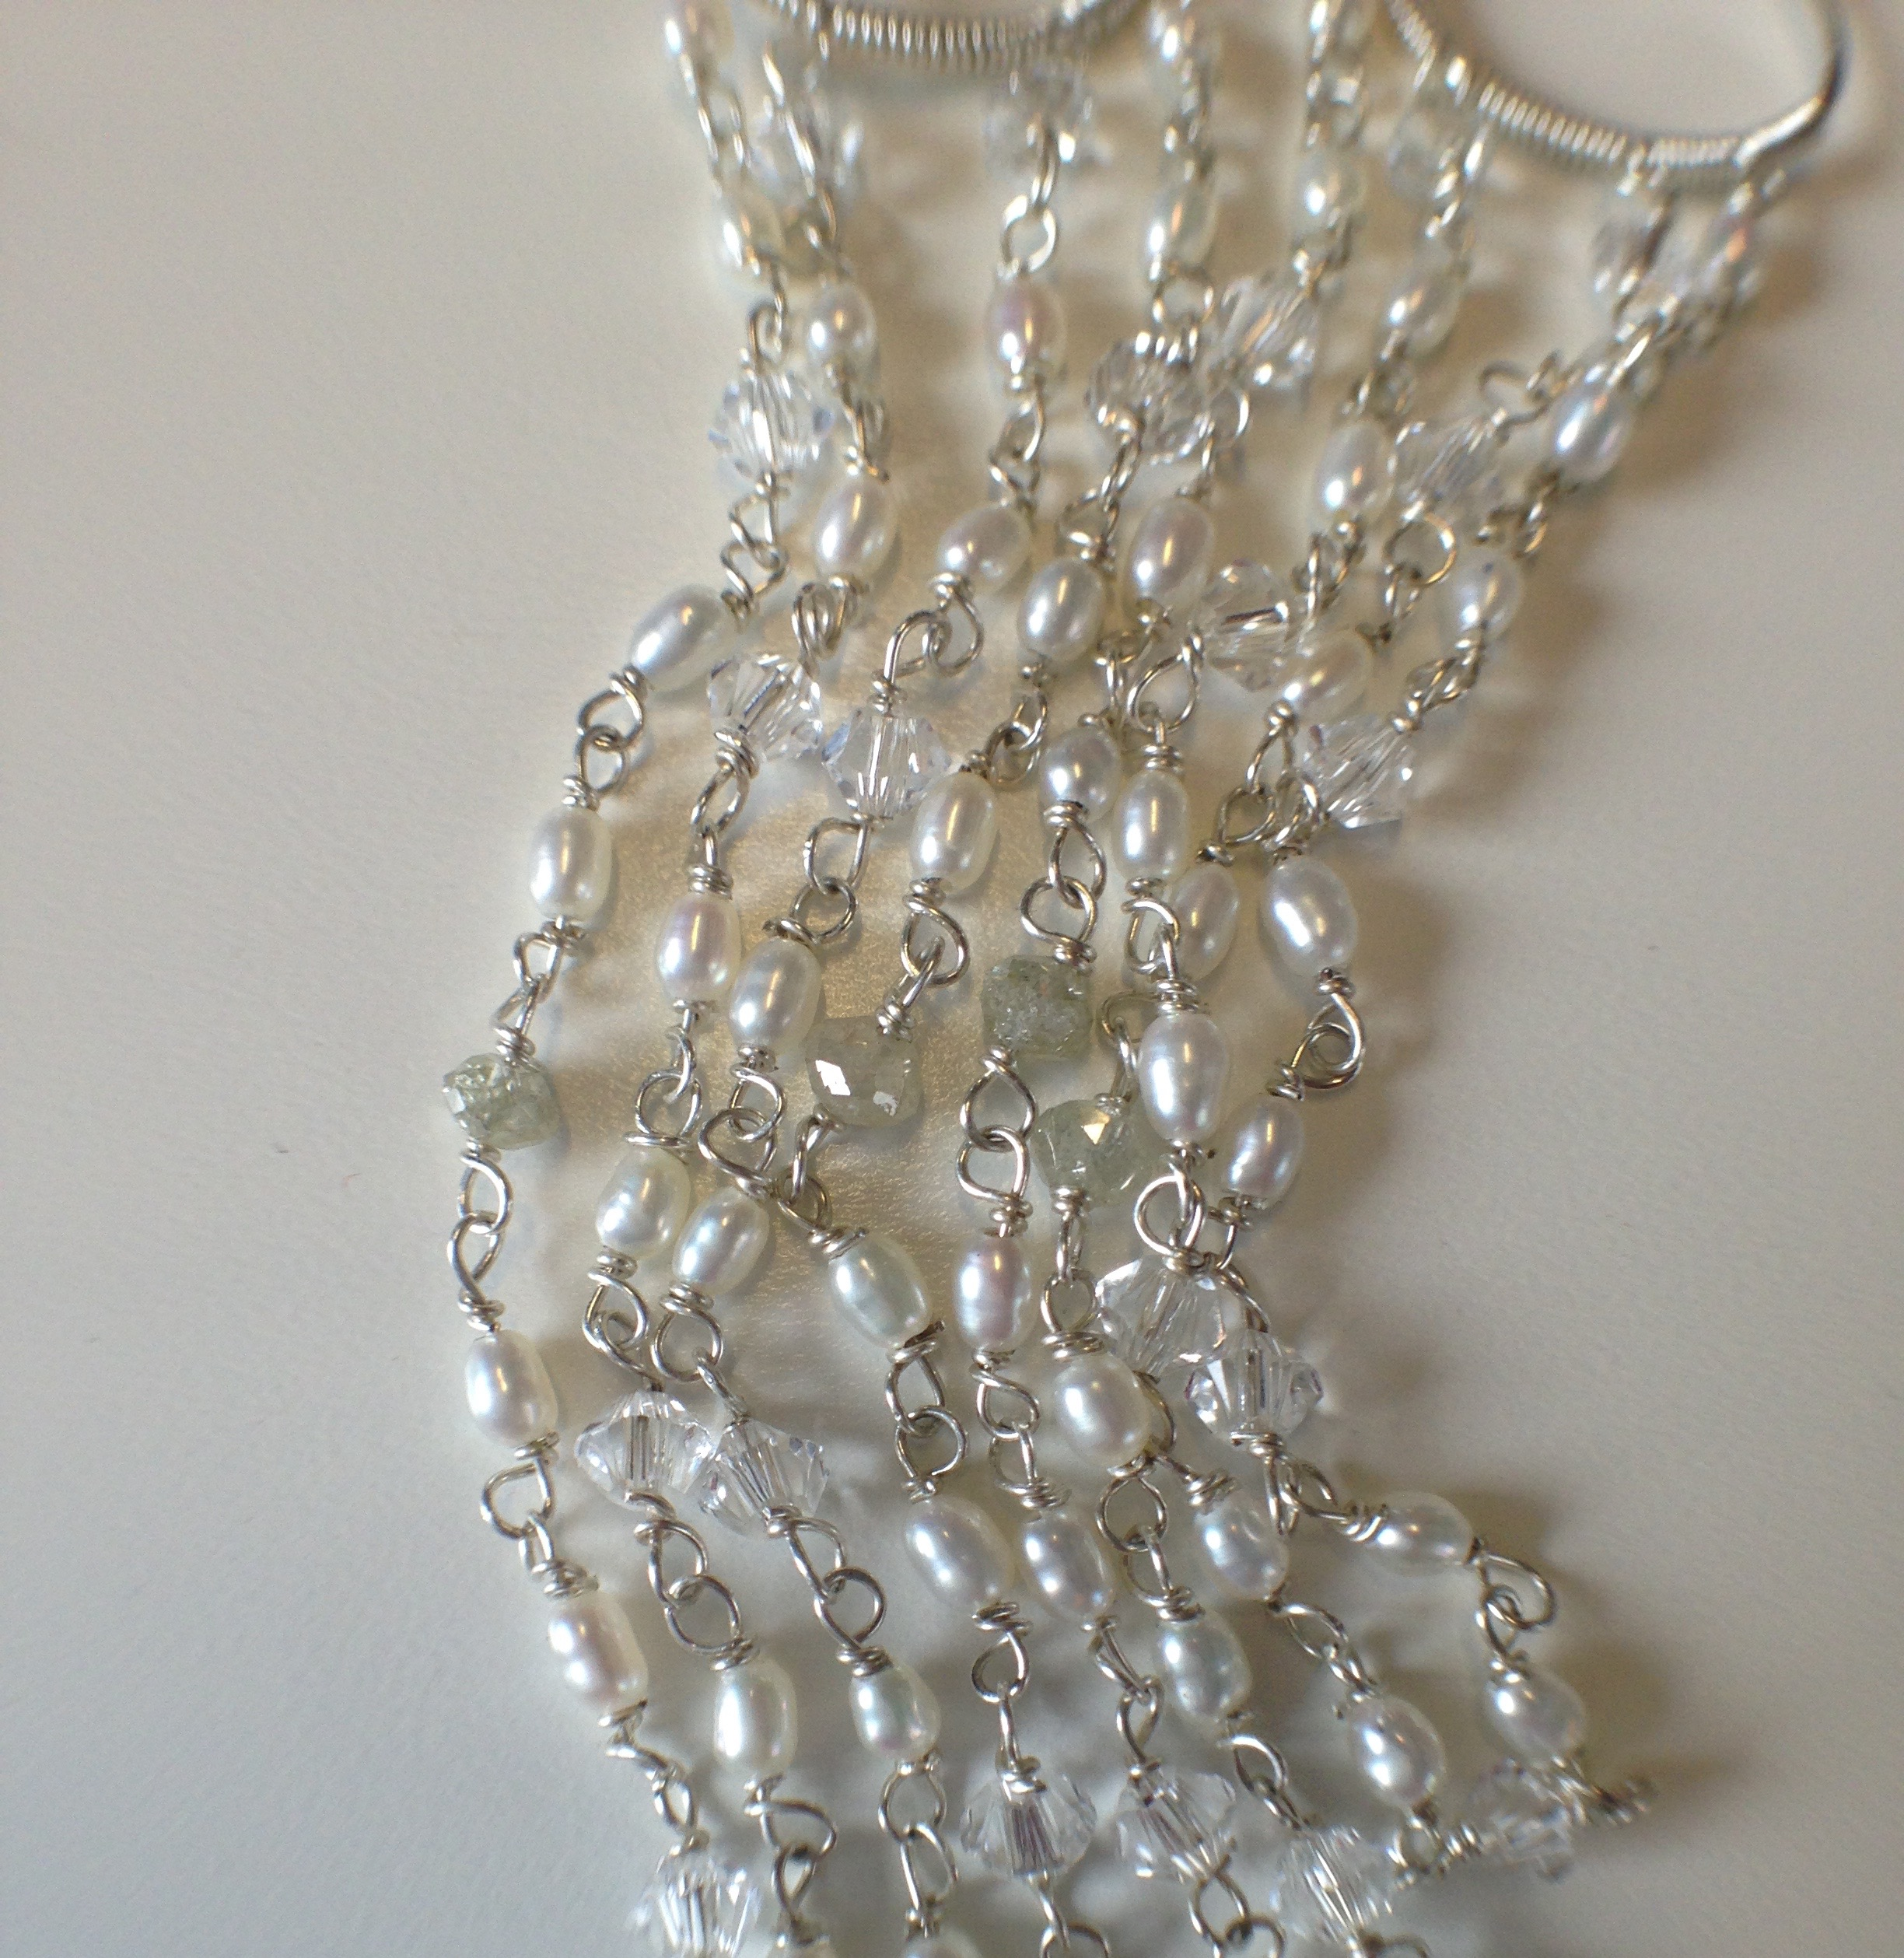 Detailing of Sara's earrings.  Pearls, Swarovski, and diamond